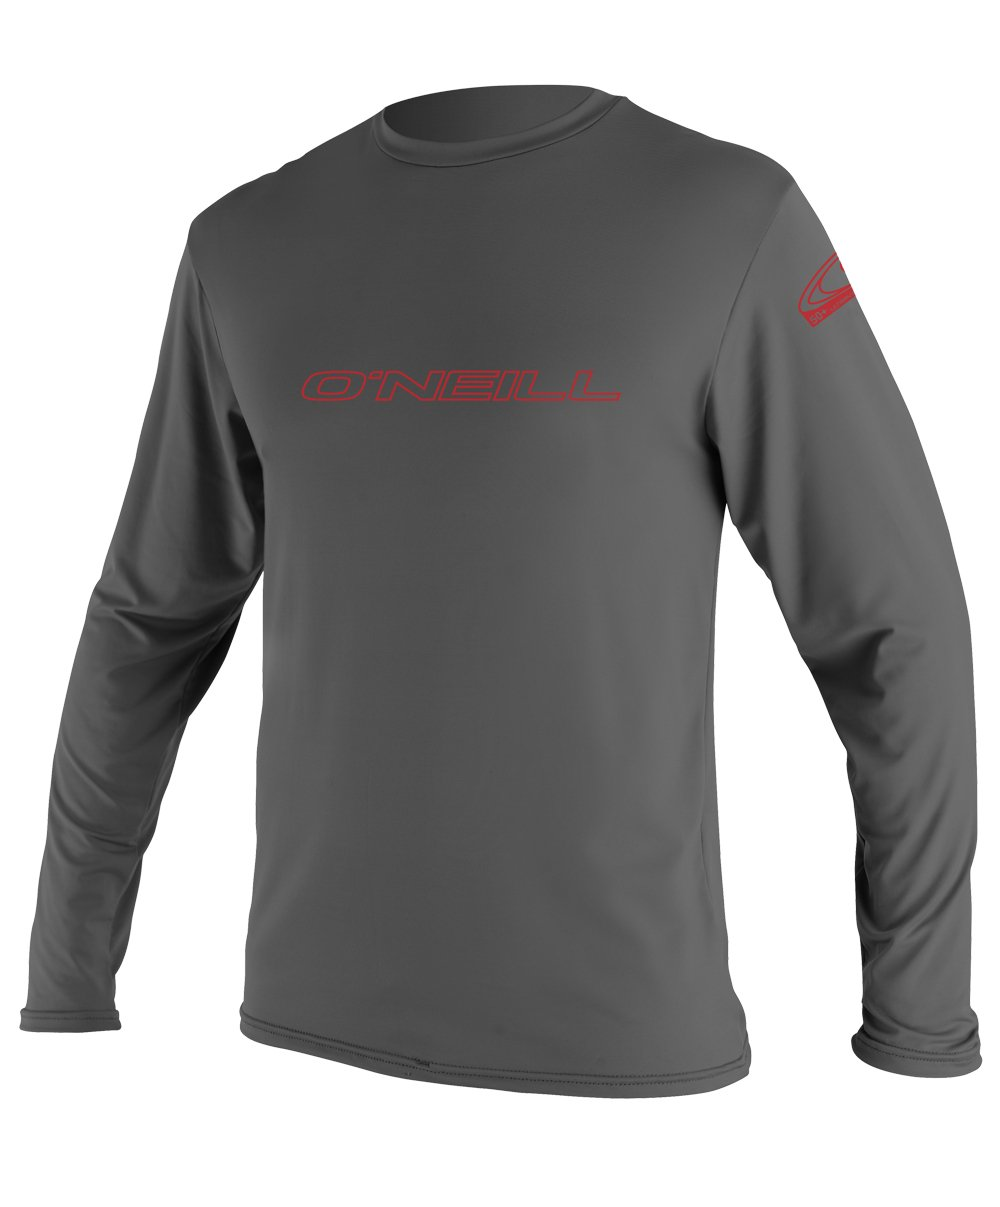 O'Neill Youth Basic Skins UPF 50+ Long Sleeve Sun Shirt, Graphite, 6 by O'Neill Wetsuits